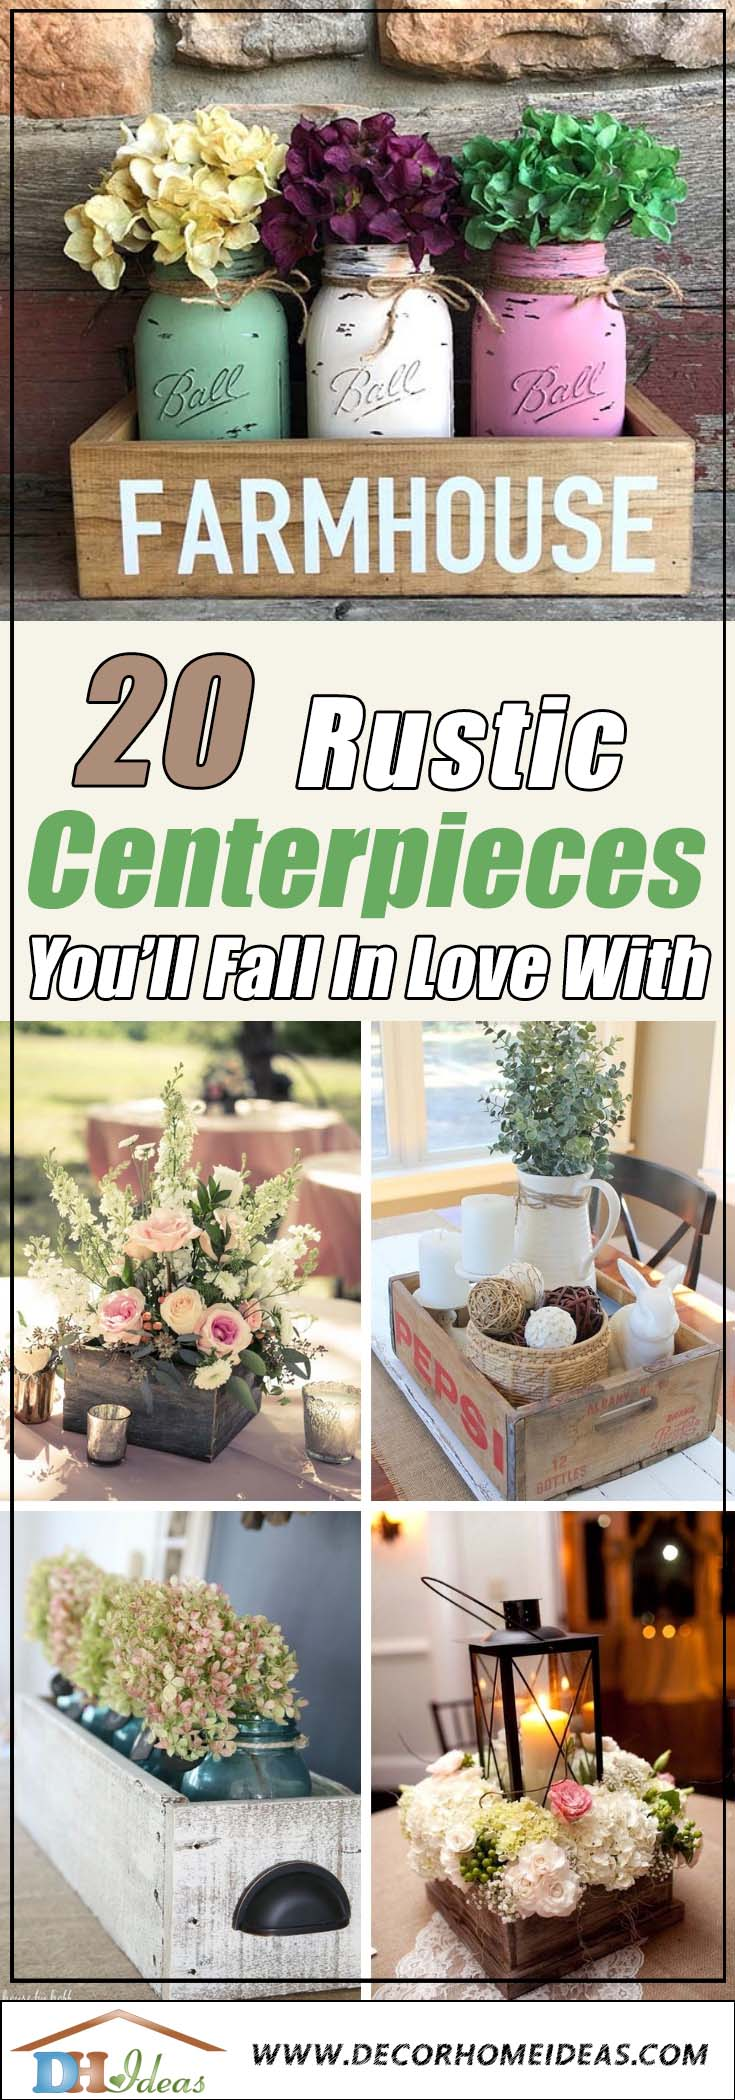 Rustic Wooden Box Centerpieces #rustic #centerpieces #woodenbox #homedecor #decorhomeideas